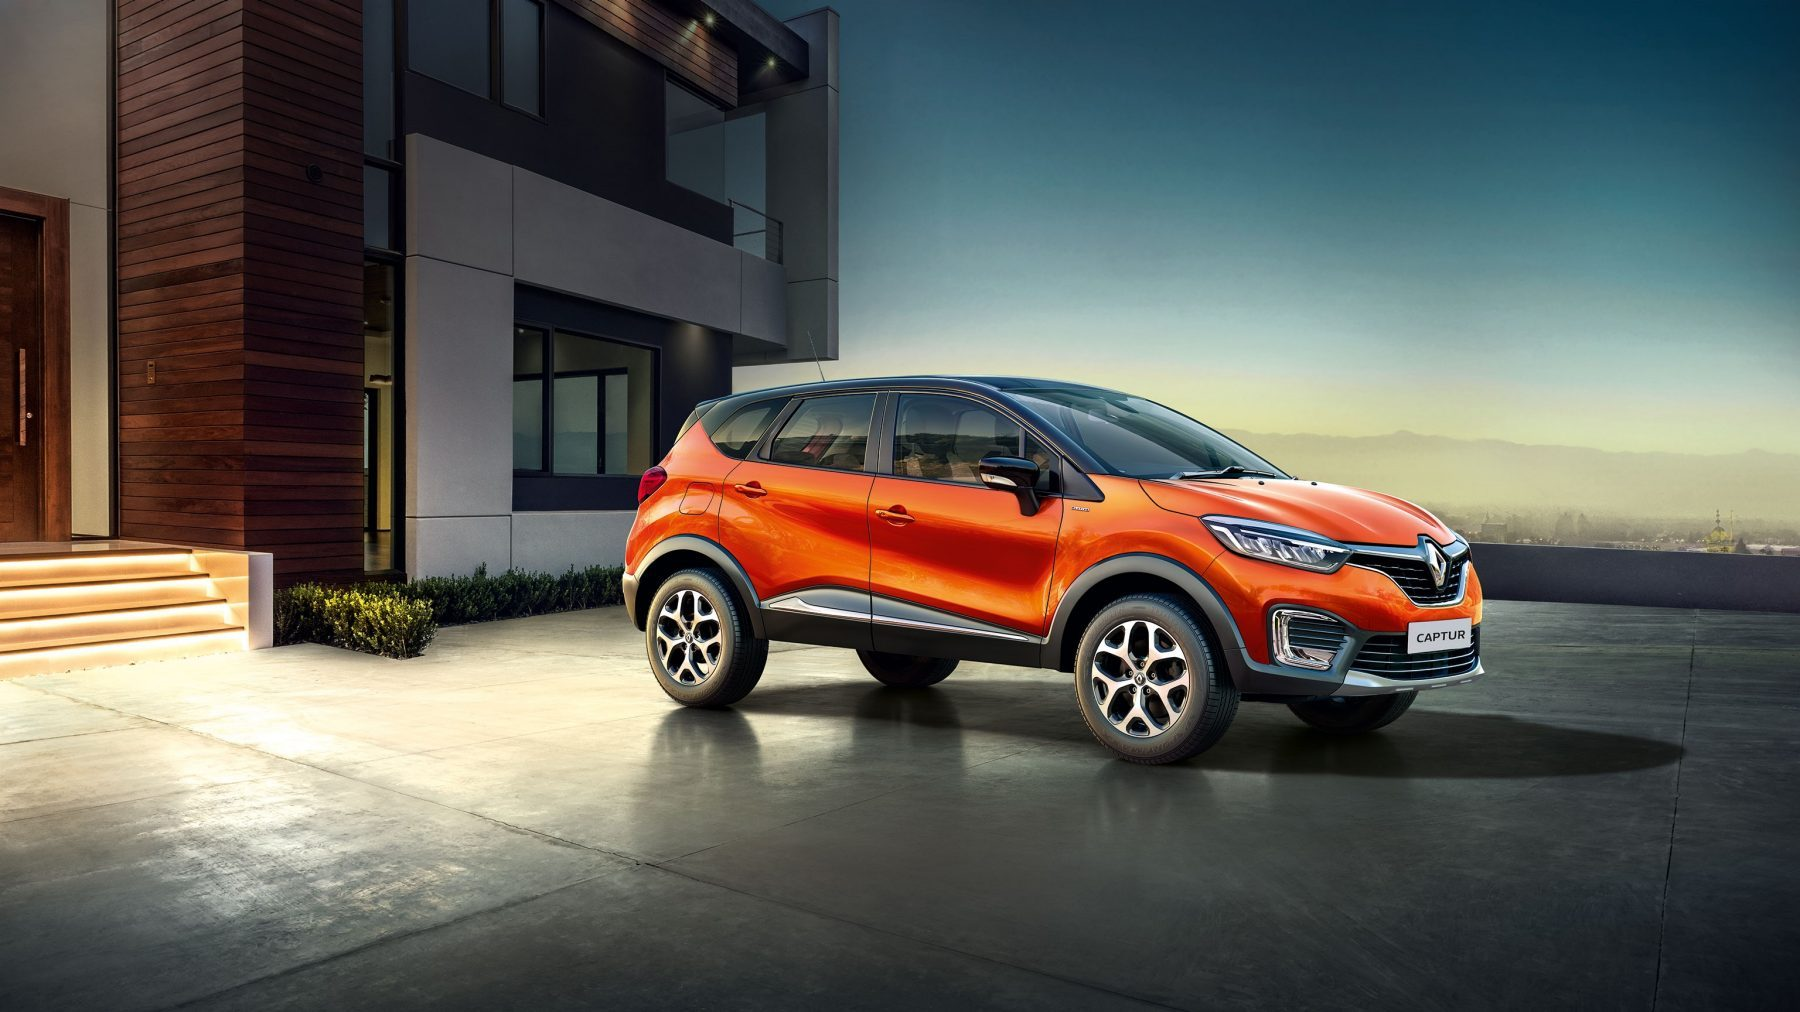 The 'Renault CAPTUR' is here to capture your senses. India's most stylish SUV